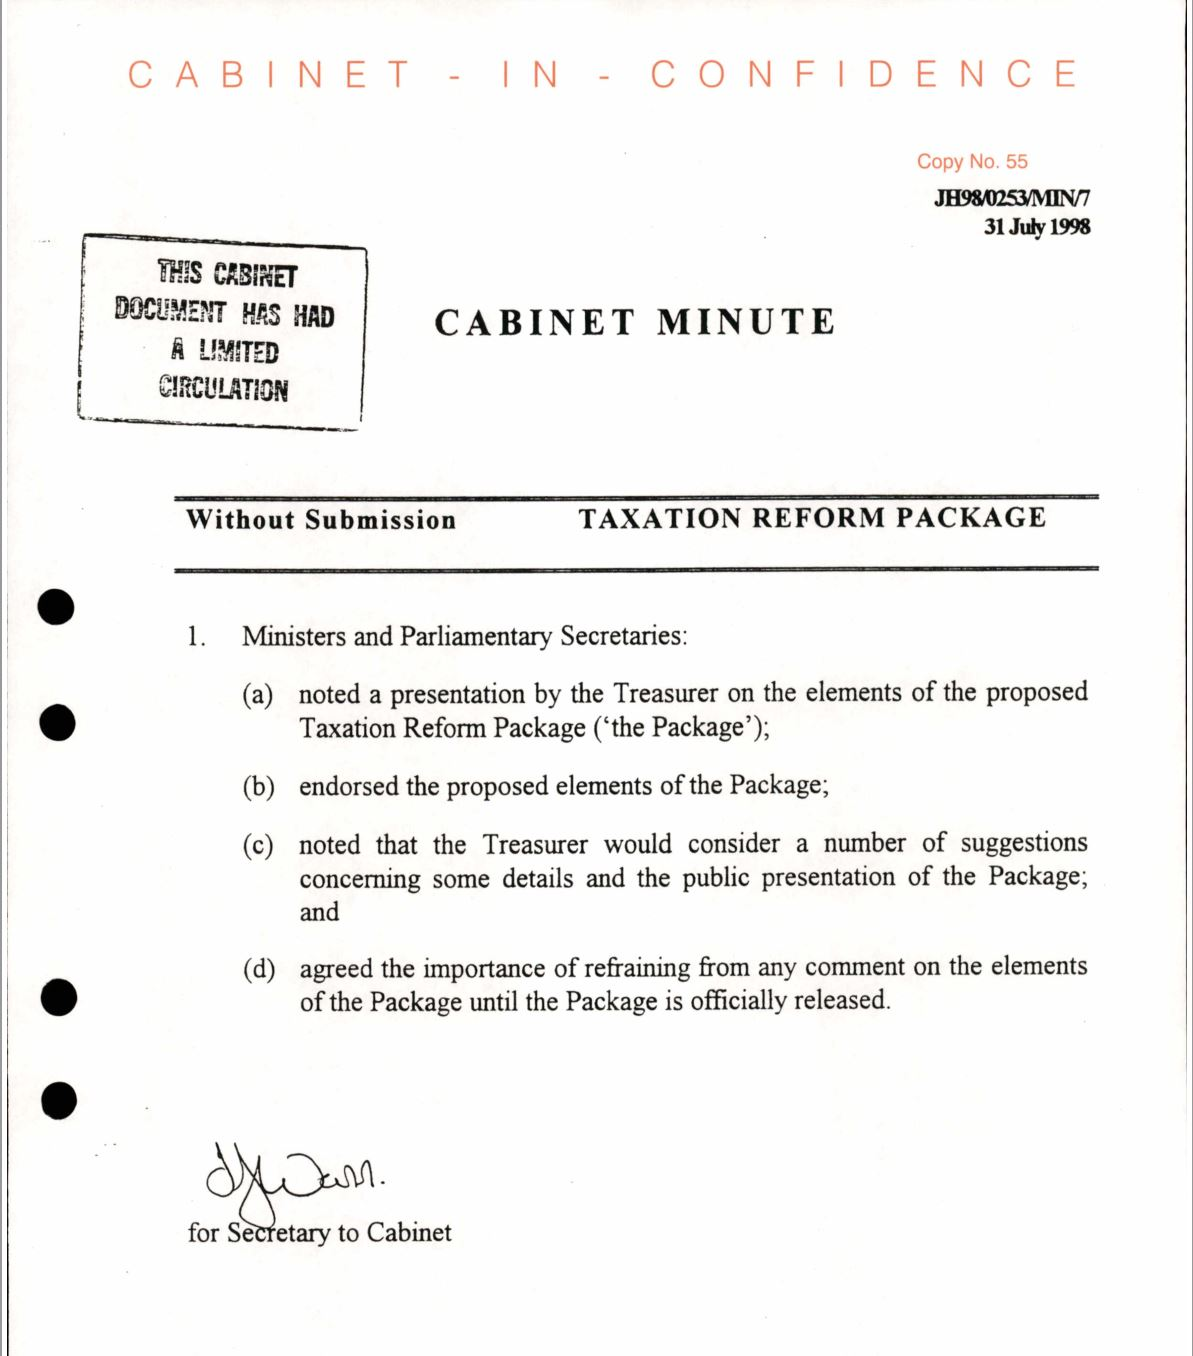 Cabinet papers 1998-99: How the GST became unstoppable_1